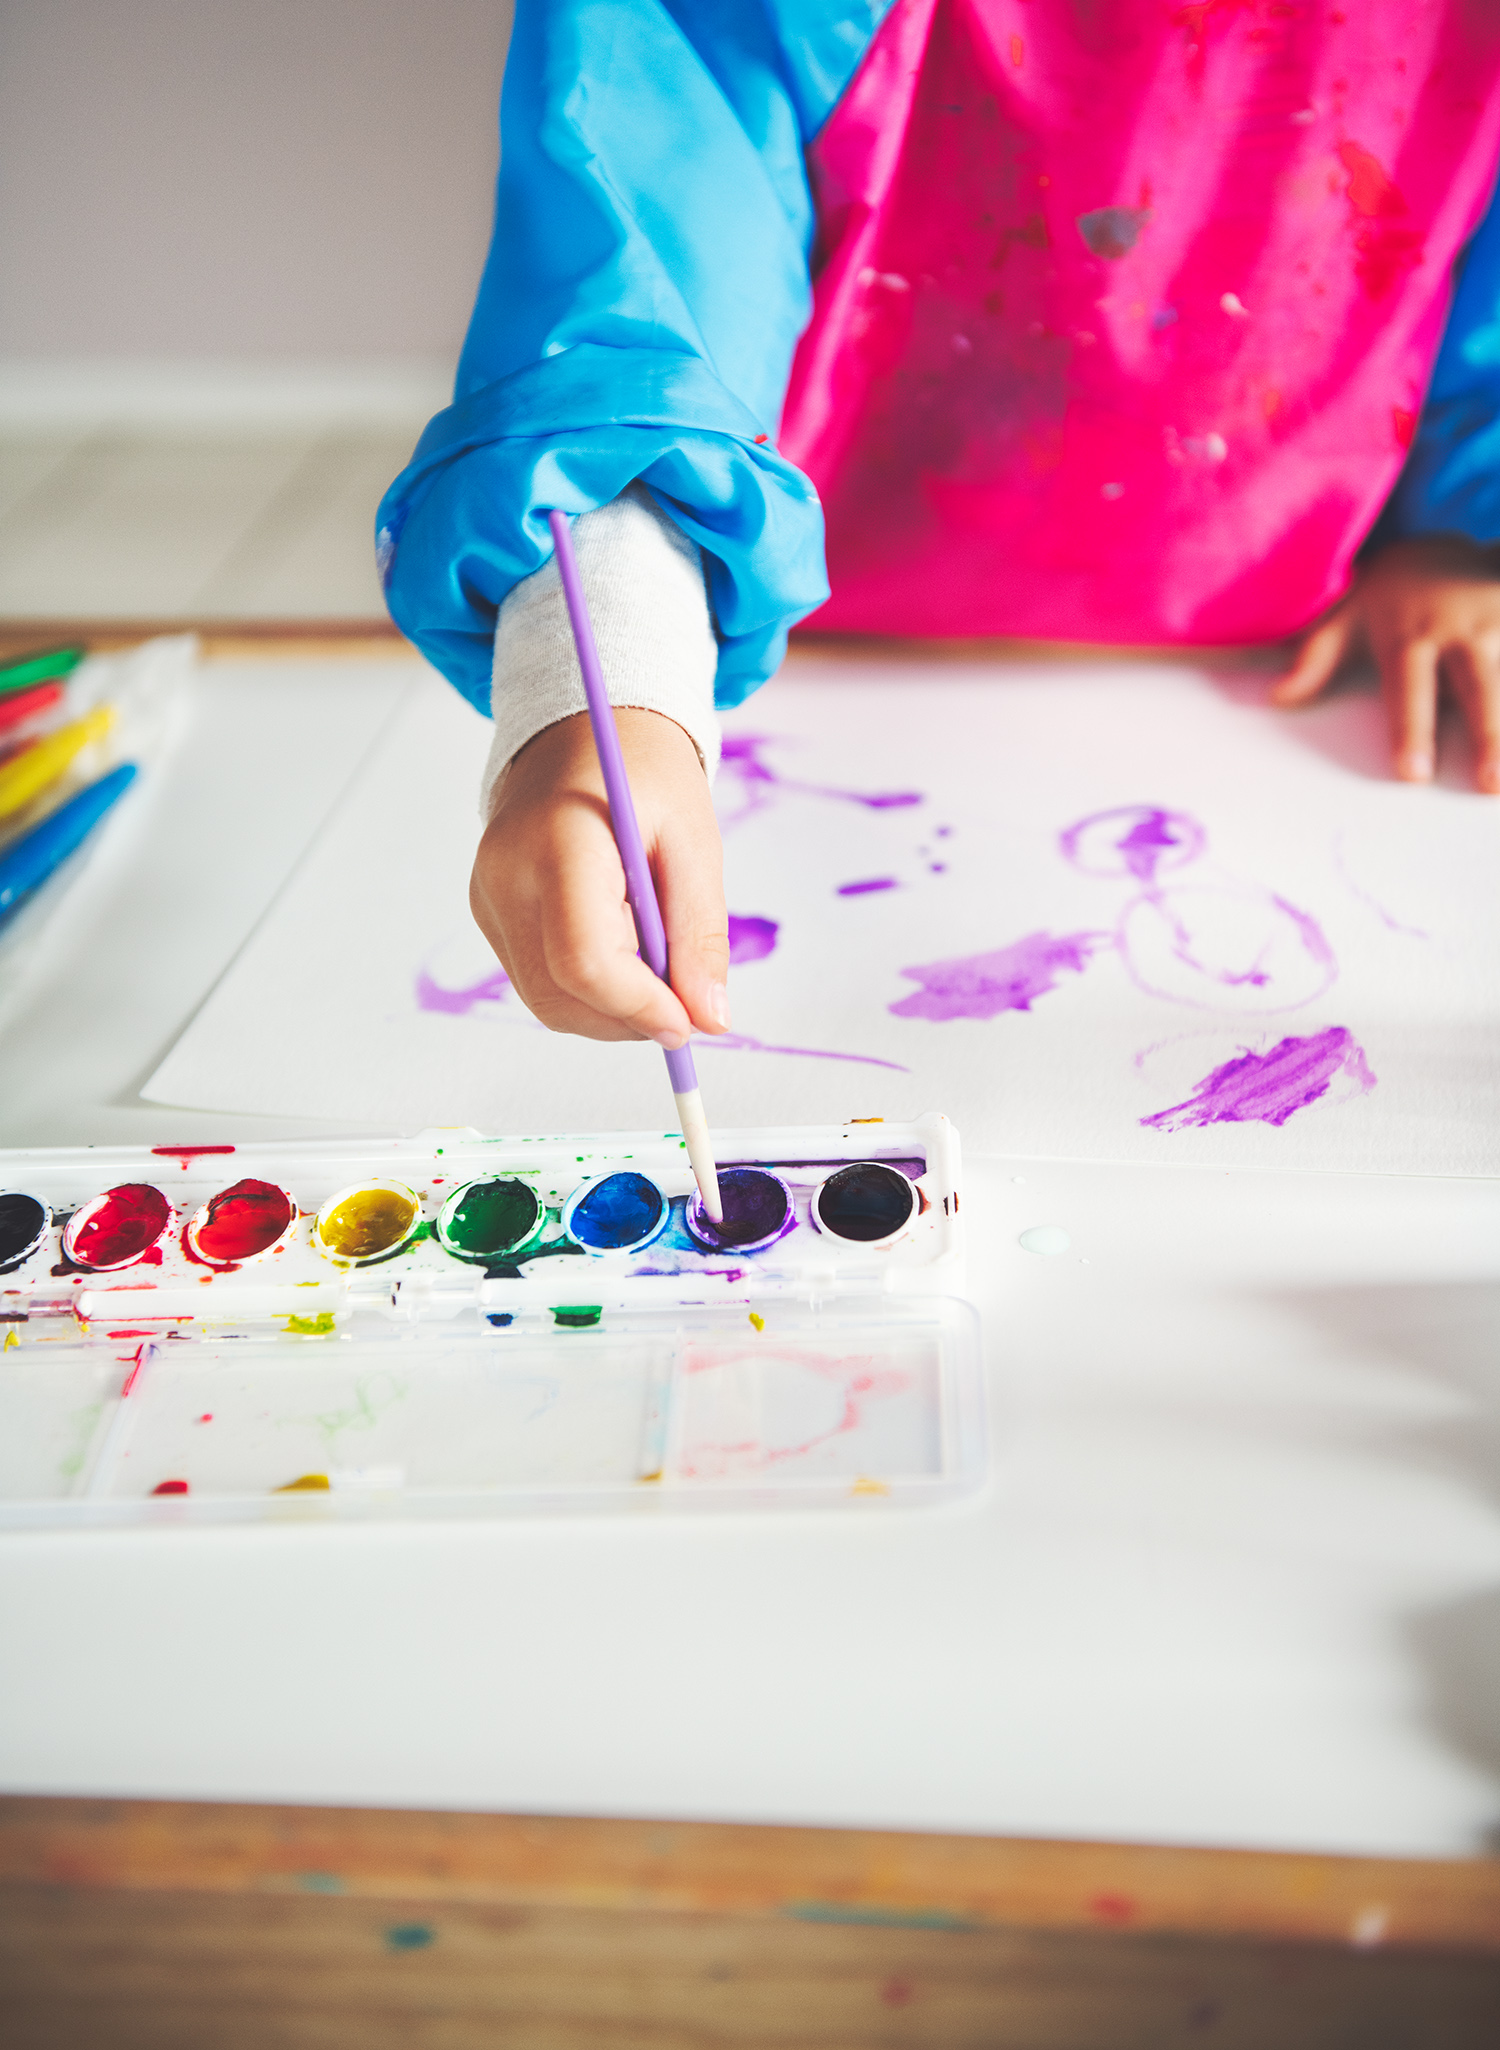 Child's Hand Painting Using Watercolors